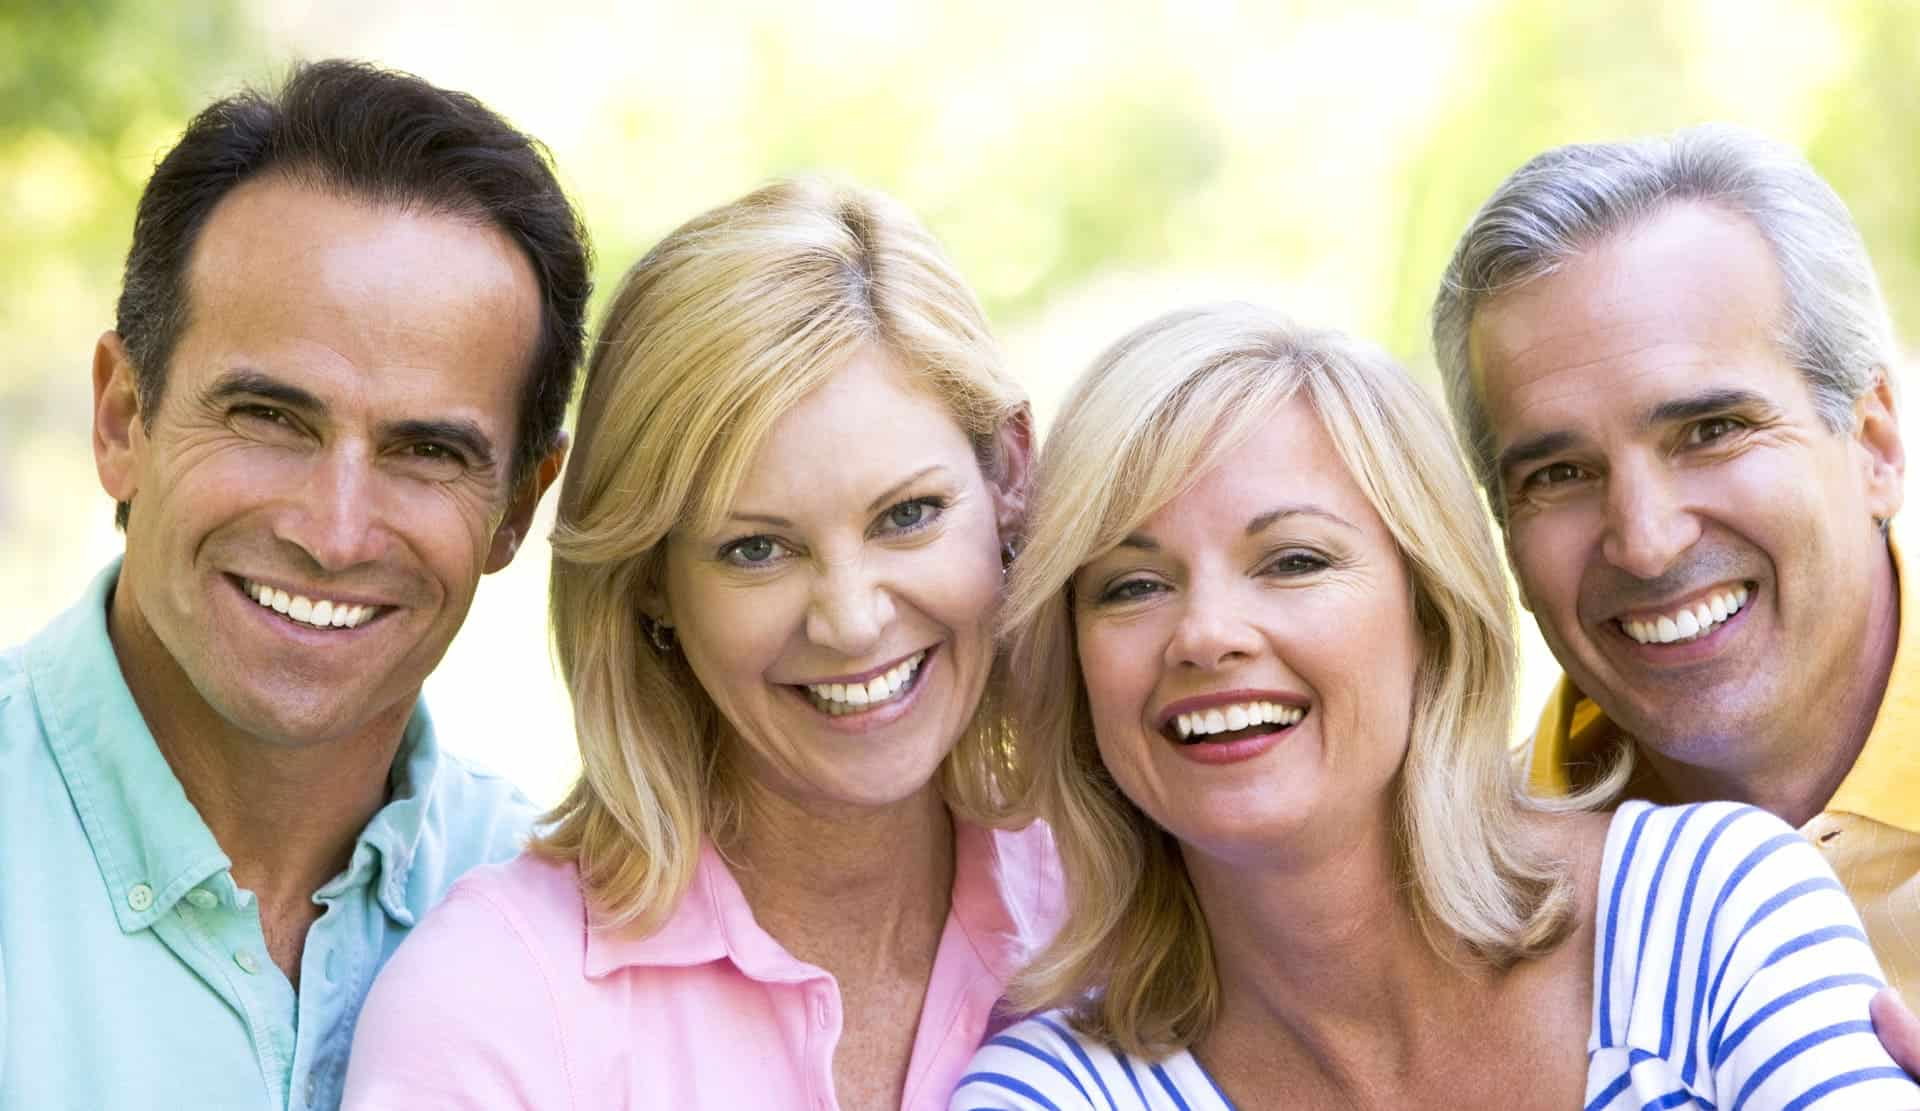 Two smiling pairs of middle age people